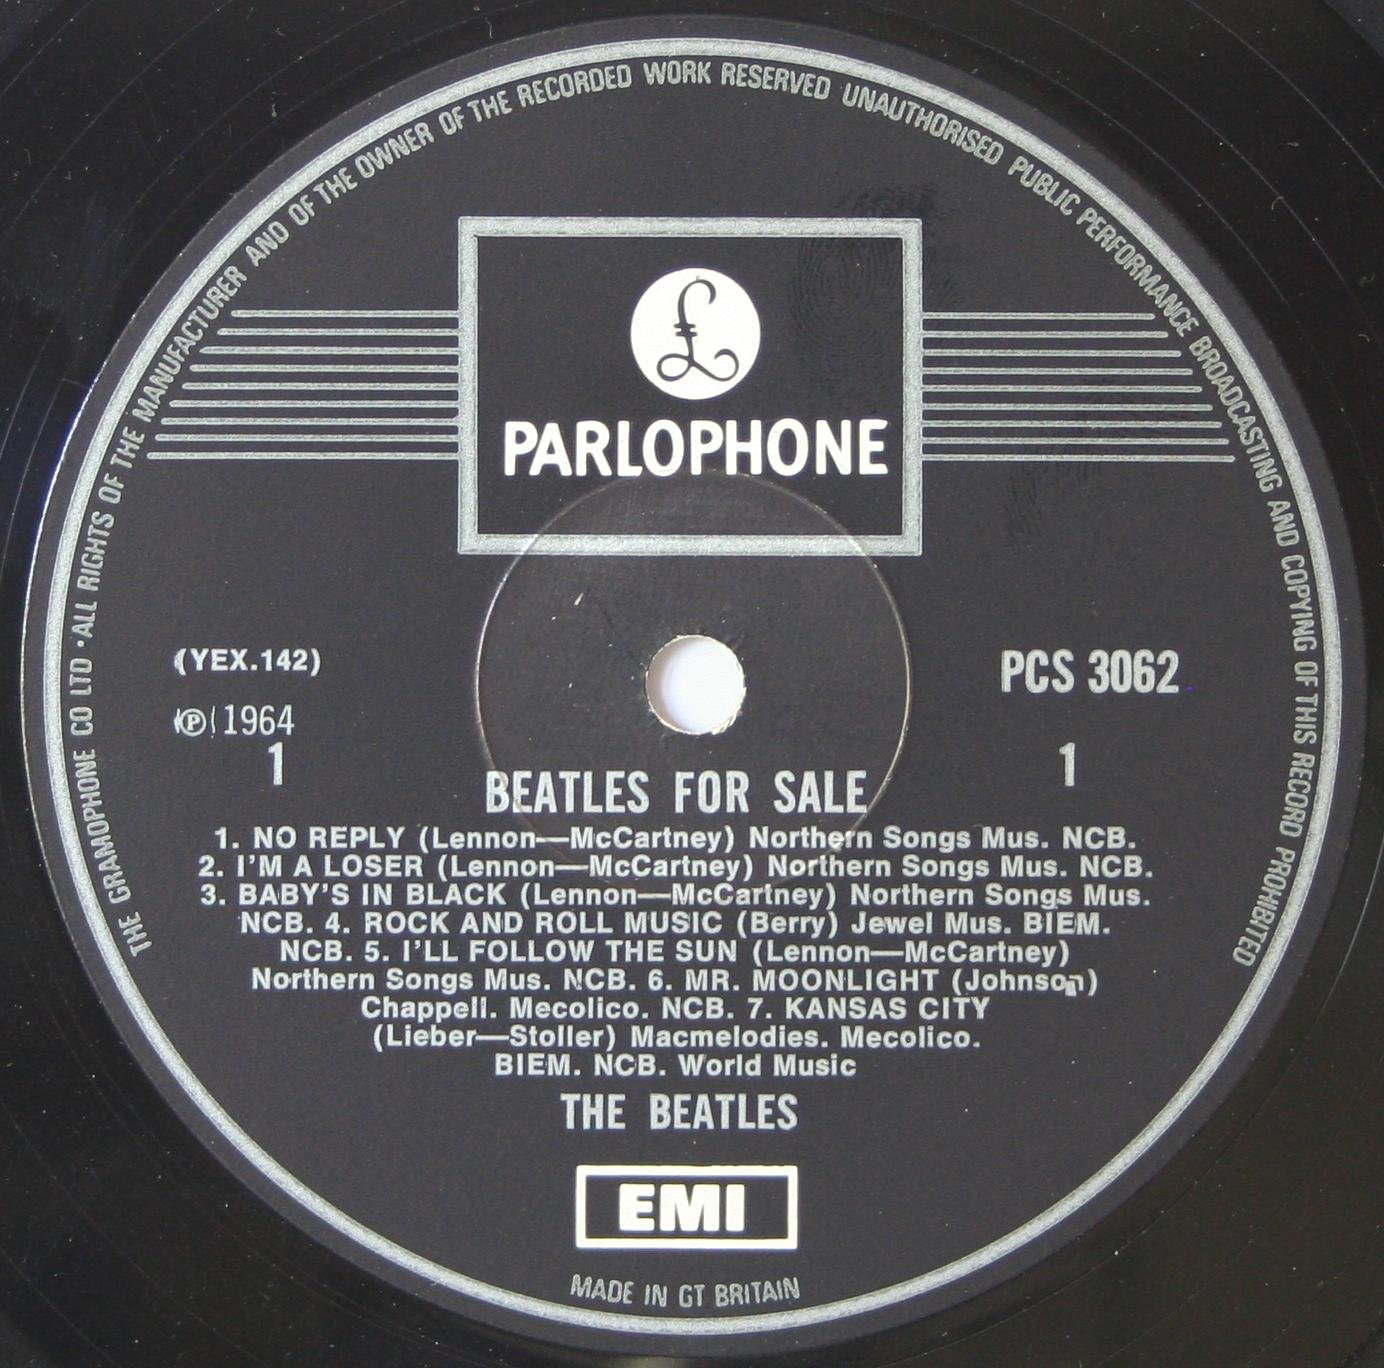 The Beatles Collection 187 Beatles For Sale Parlophone Pcs